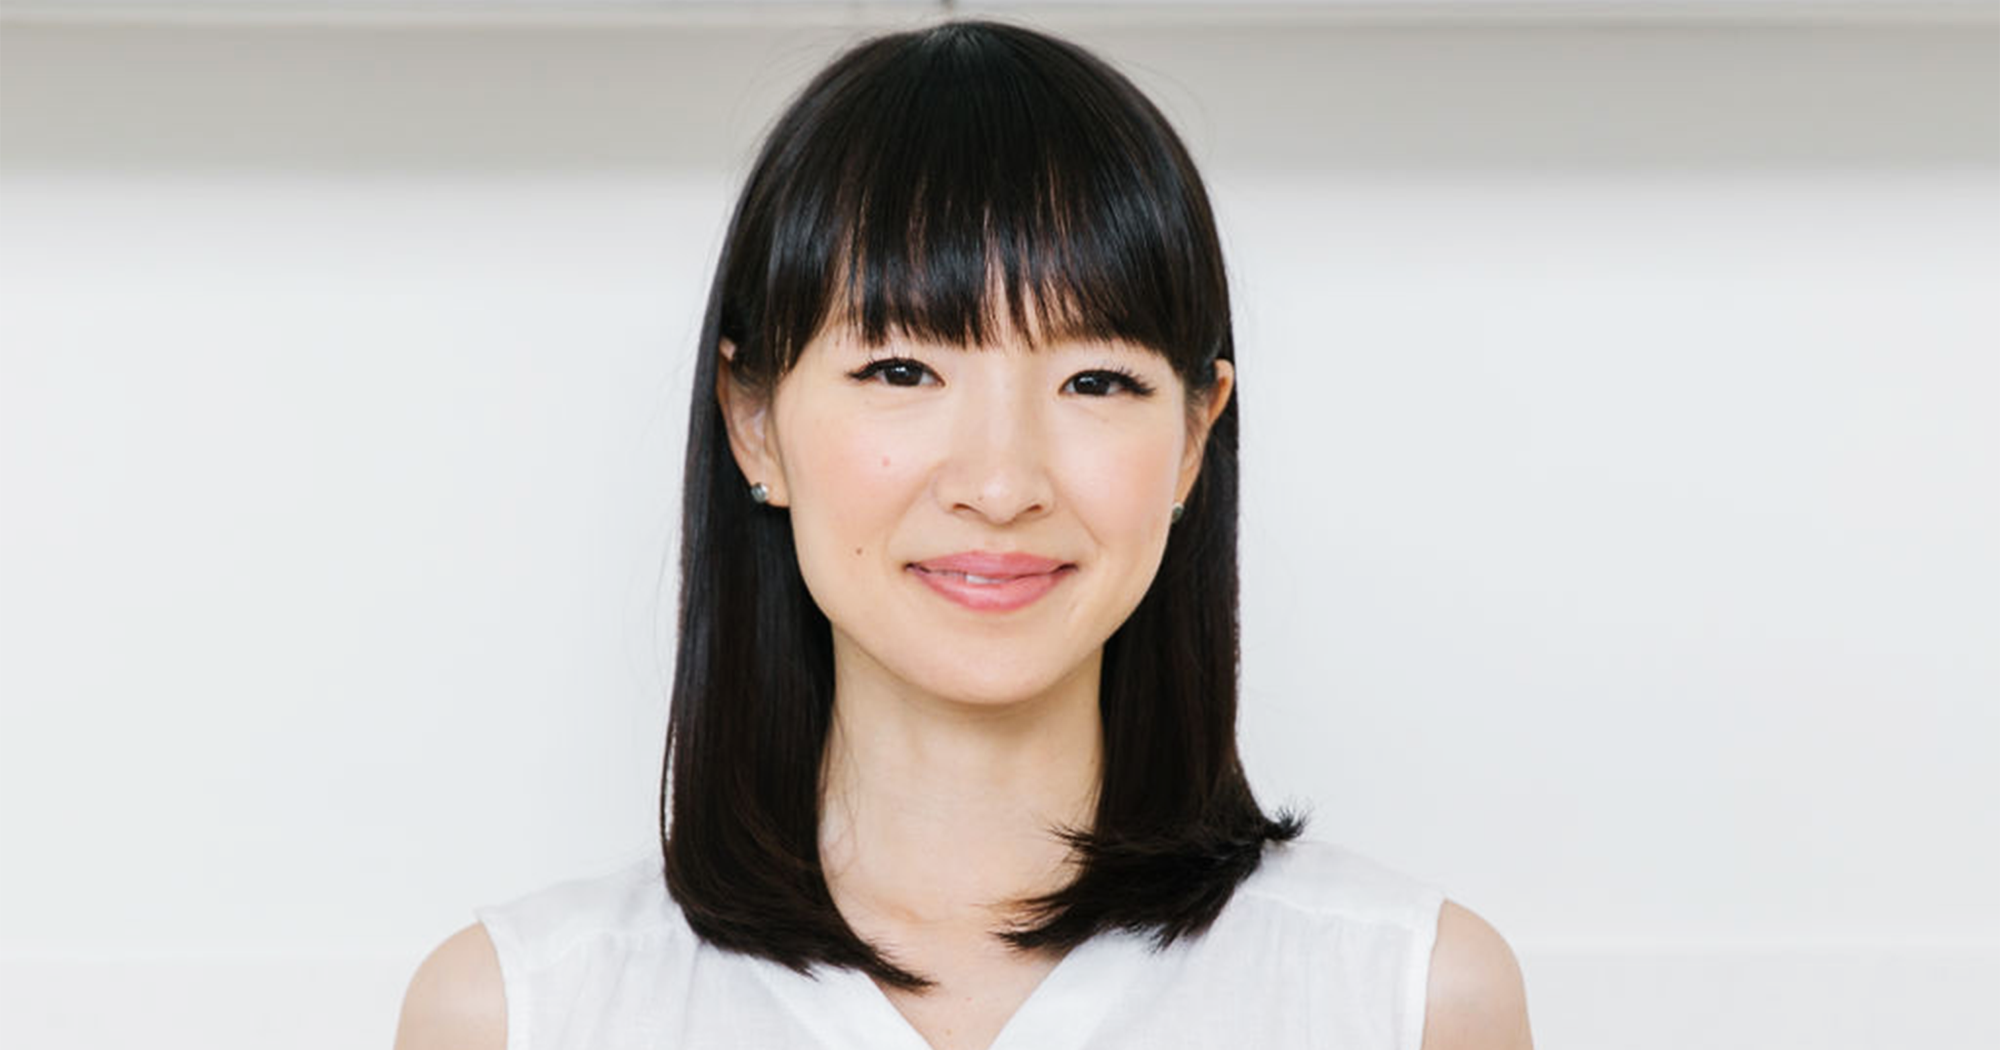 Marie Kondo Has A Reasonable Response To Your Reasonable Criticisms